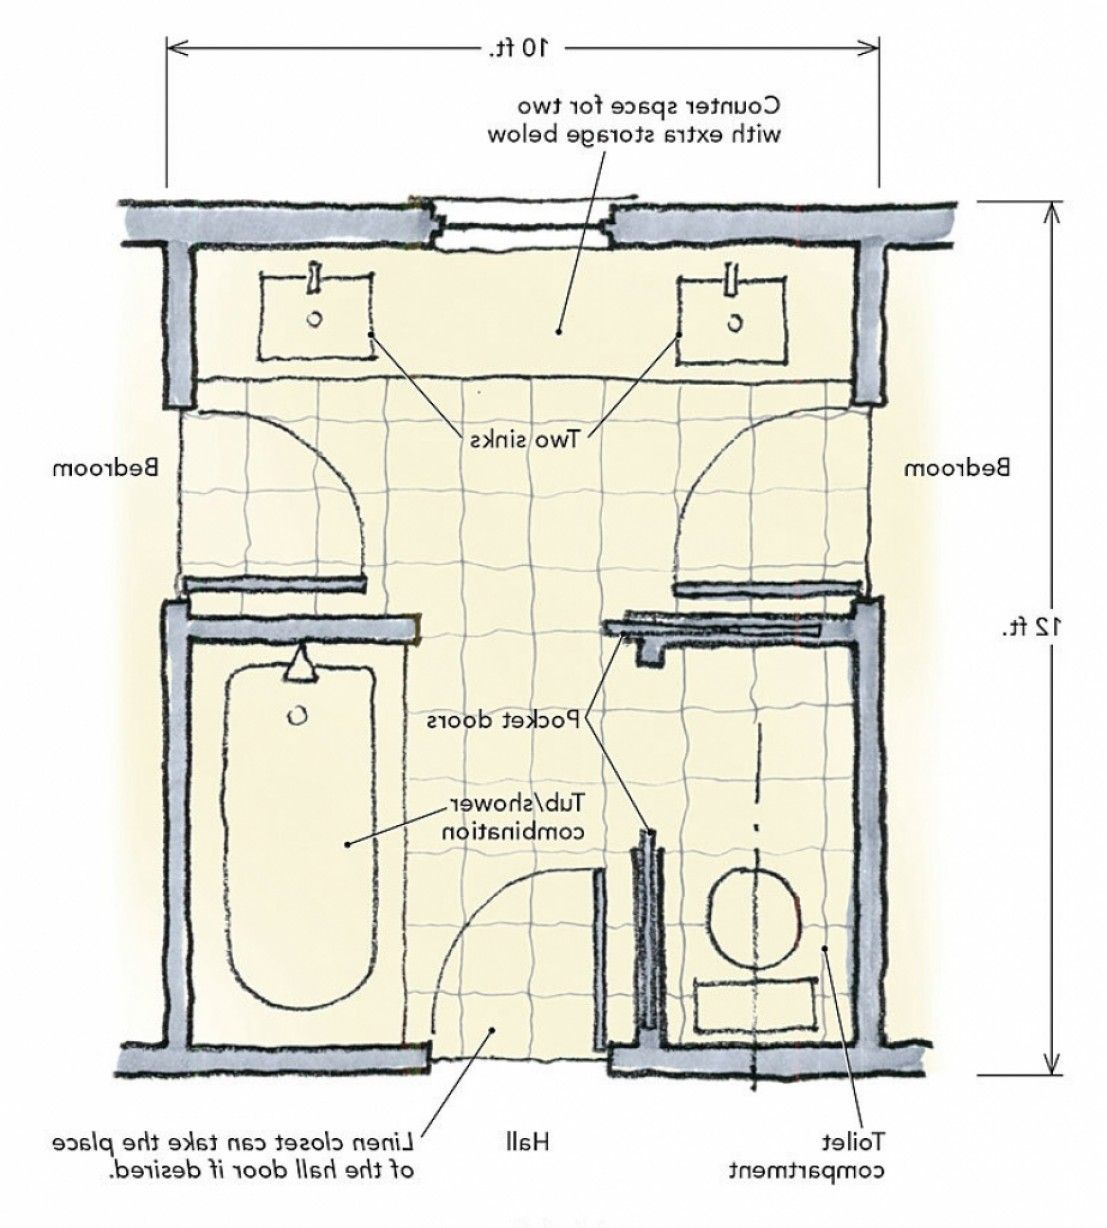 Jack And Jill Bathroom Plans Jack And Jill Bathroom Designs Jack Jill Bathroom Layout Bathroom Desi Jack And Jill Bathroom Bathroom Floor Plans Bathroom Plans